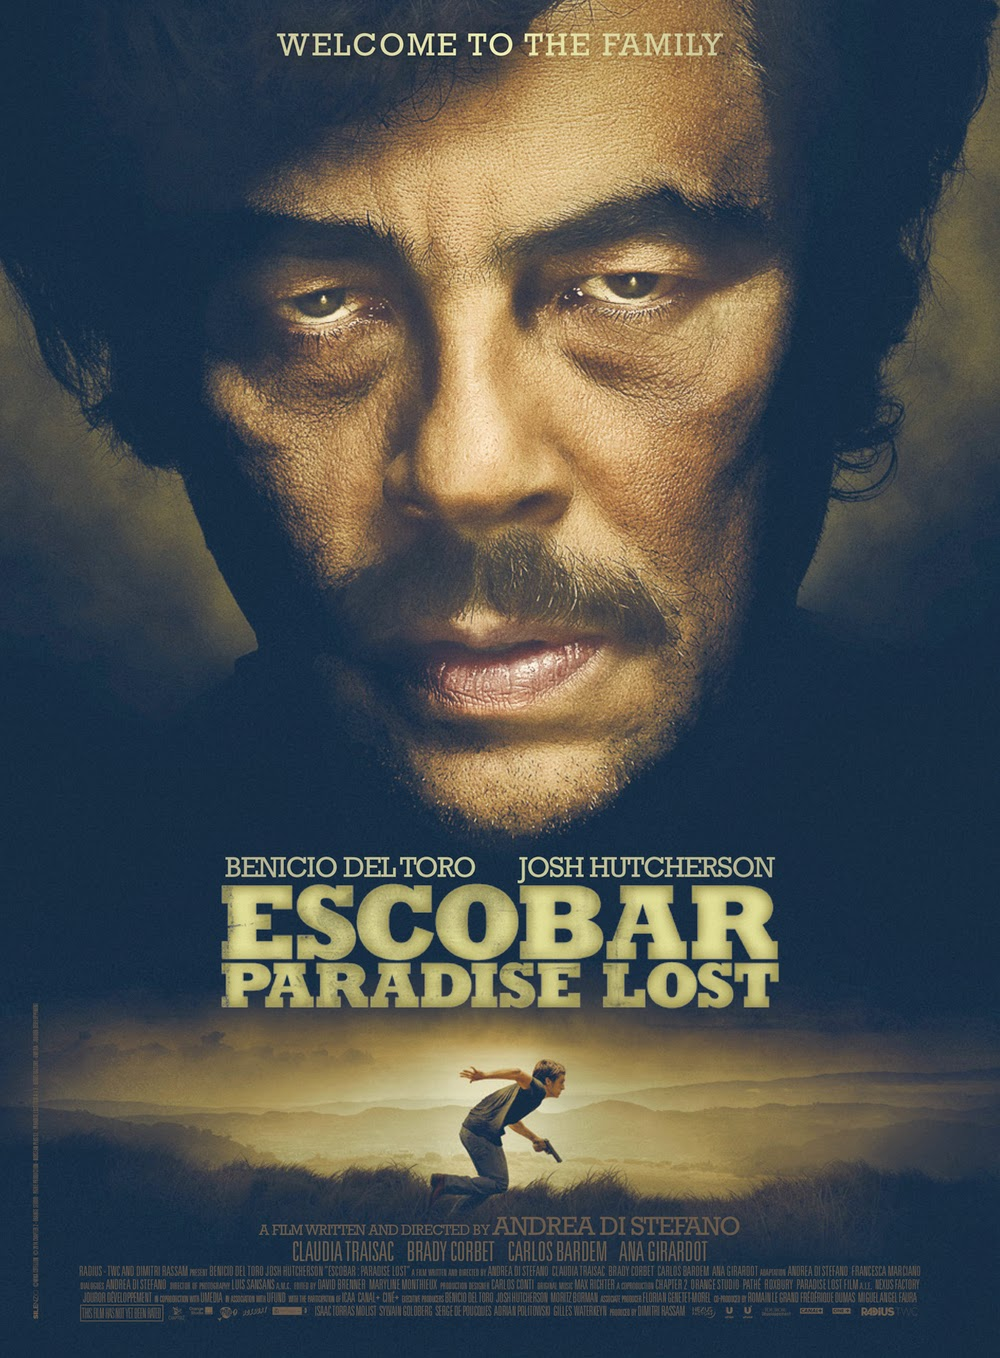 Descarga Escobar Paradise Lost [1080p] [FullHD] (2014) 1 link Audio Latino